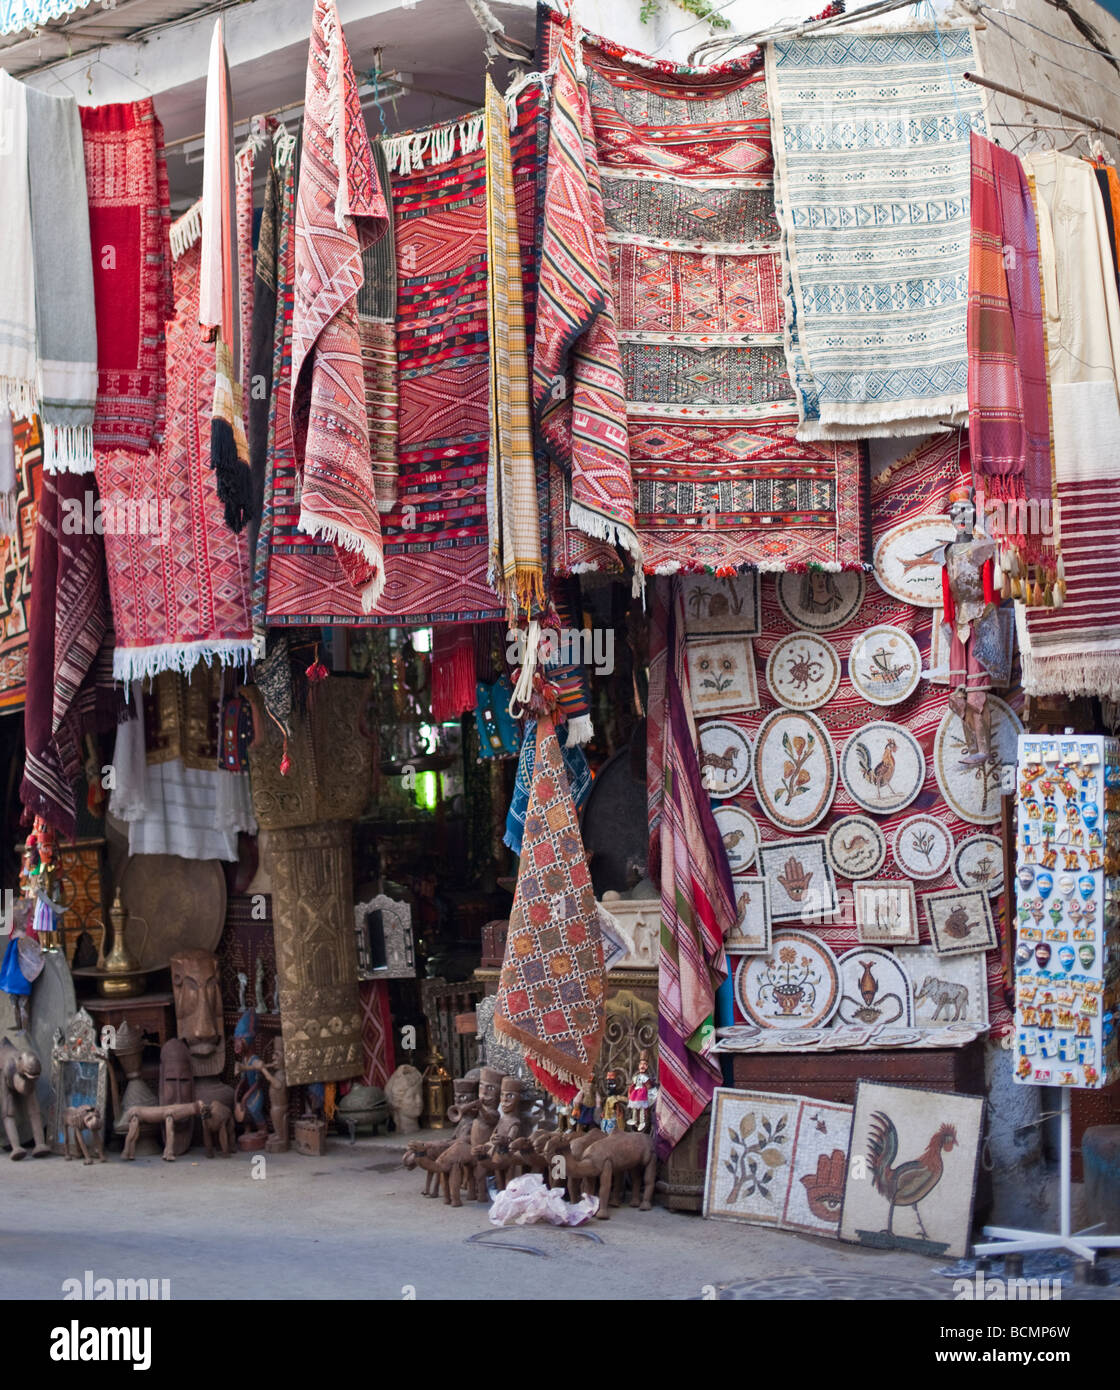 Shops In The Tunis Medina Old City Display Handicrafts And Other